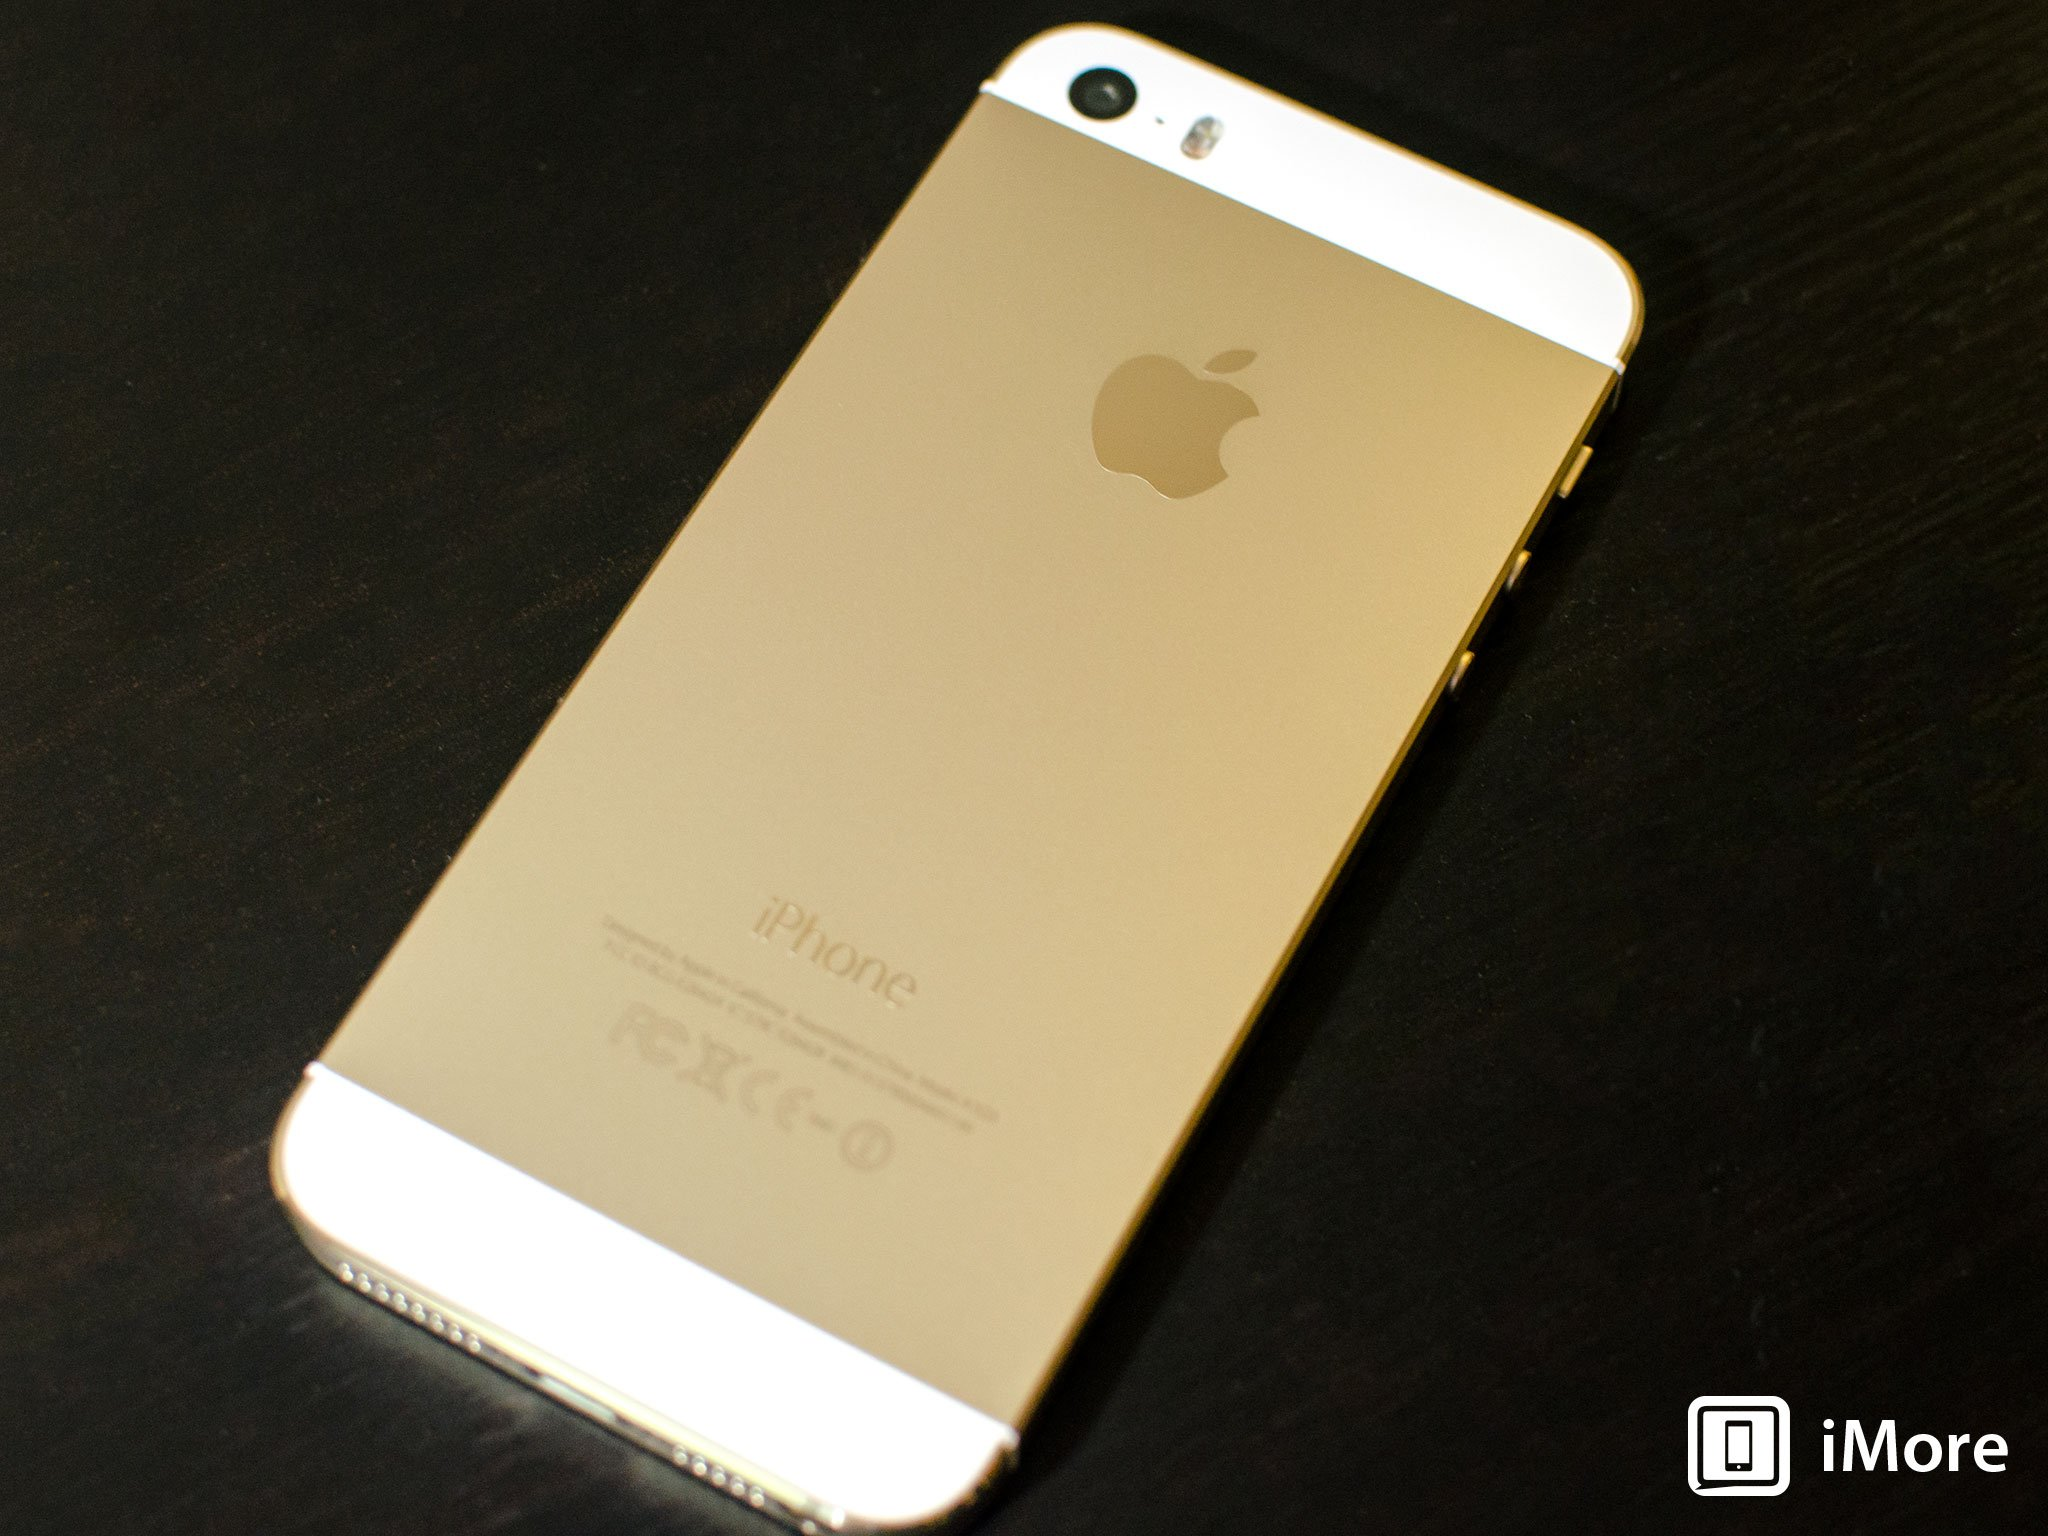 Iphone 5c Wallpaper Hd Iphone 5s Photo Comparison Gold Silver And Space Gray